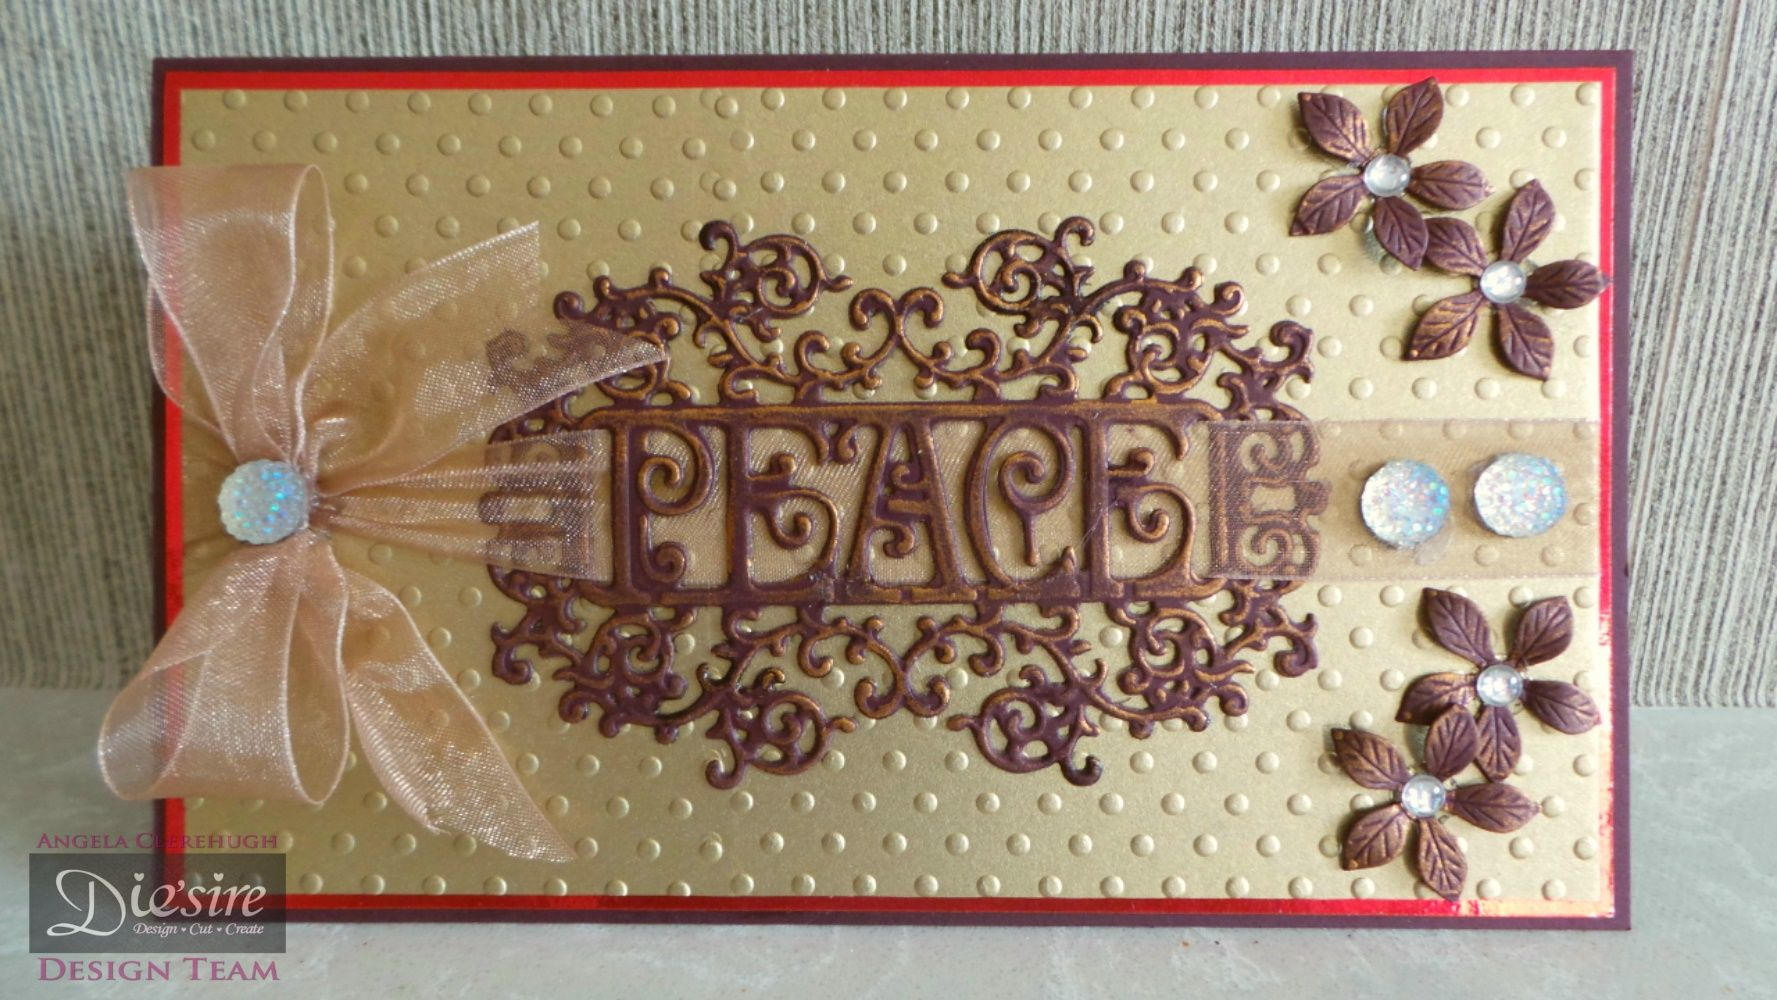 Angela Clerehugh – 7 x 5 Card – Die'sire Christmas Only Words Prestige (Peace) – Die'sire Poinsettia - Pebeo Gilding Wax (Renaissance Gold) – Collall All Purpose Glue - Burgundy Card – Red Mirror Card – Gold Card - Gems – Ribbon – Embossing Folder (Dots) - #crafterscompanion #Christmas